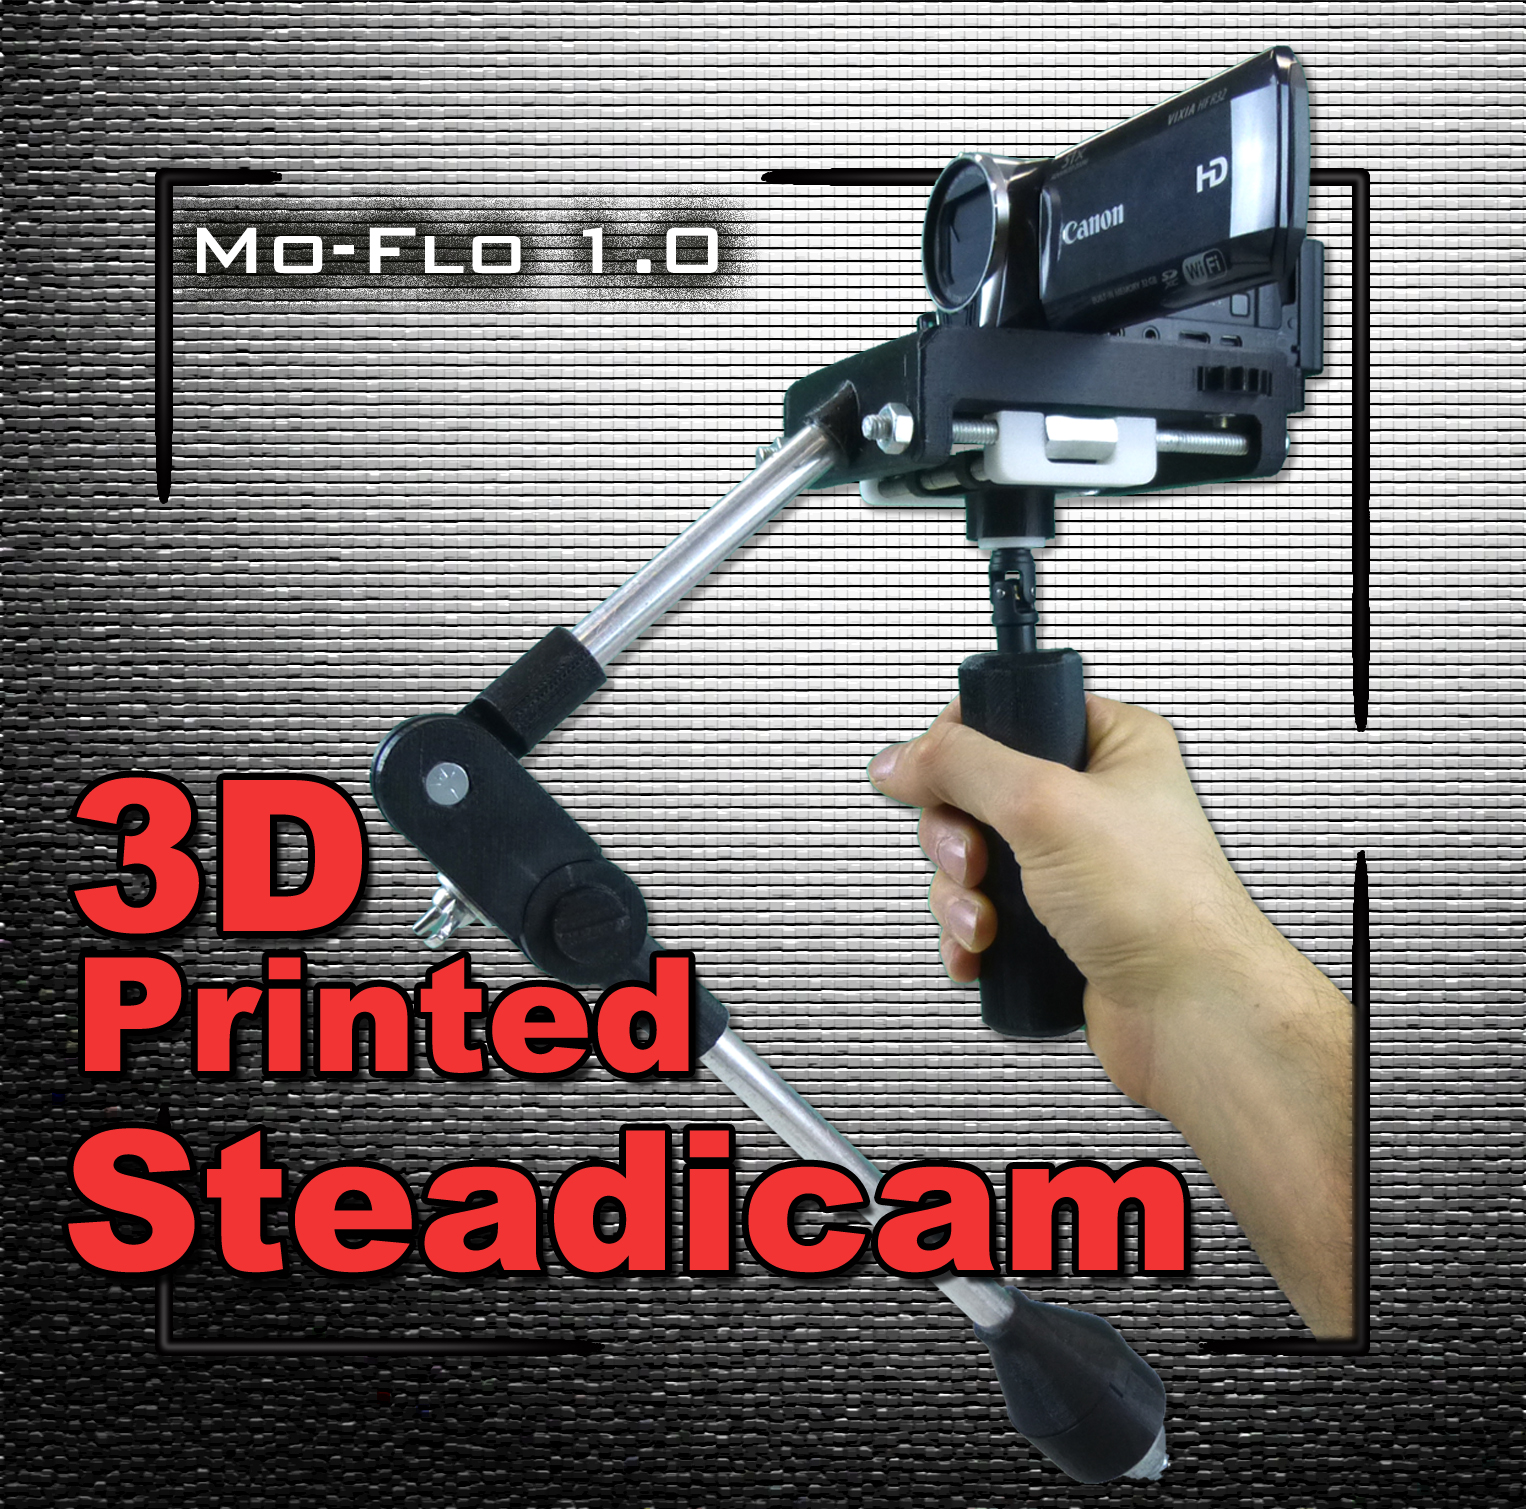 3d Printed Merlin Style Steadicam: MO-FLO 1.0